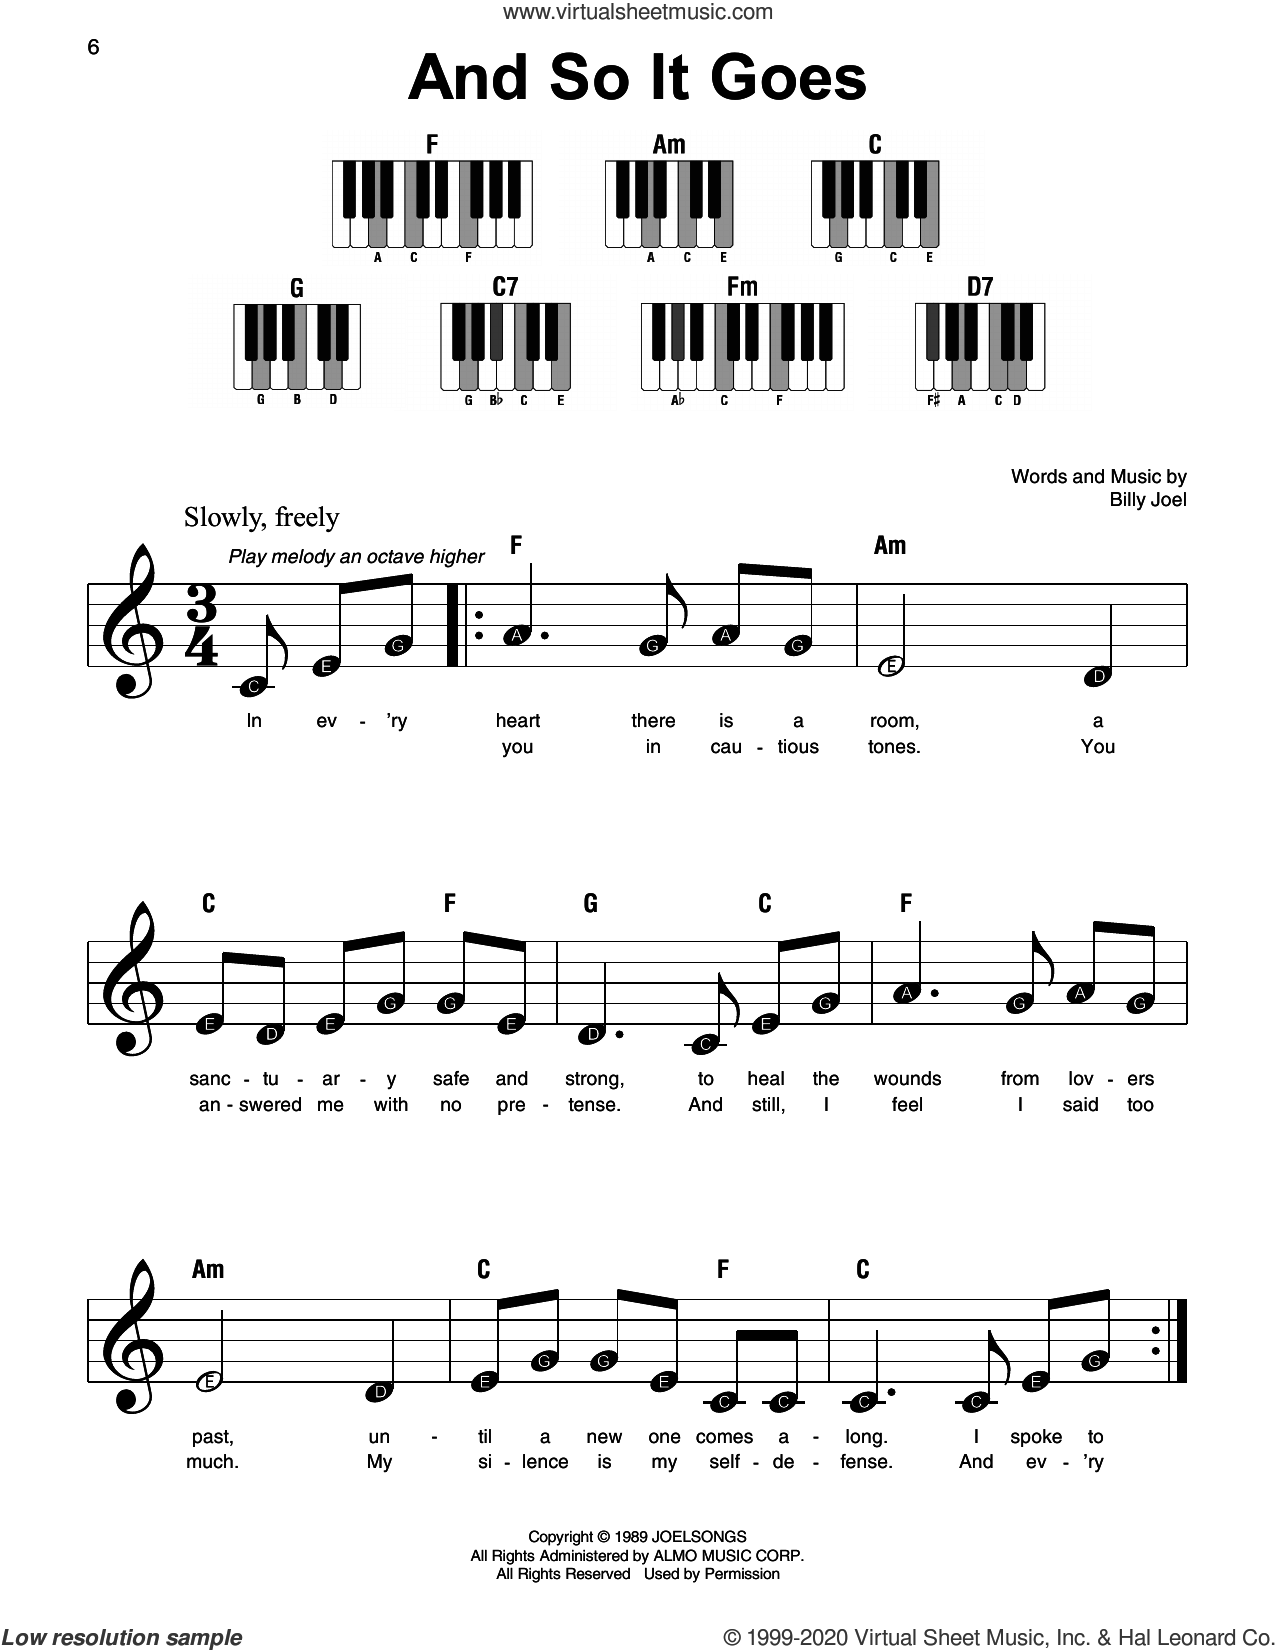 And So It Goes sheet music for piano solo by Billy Joel, beginner skill level